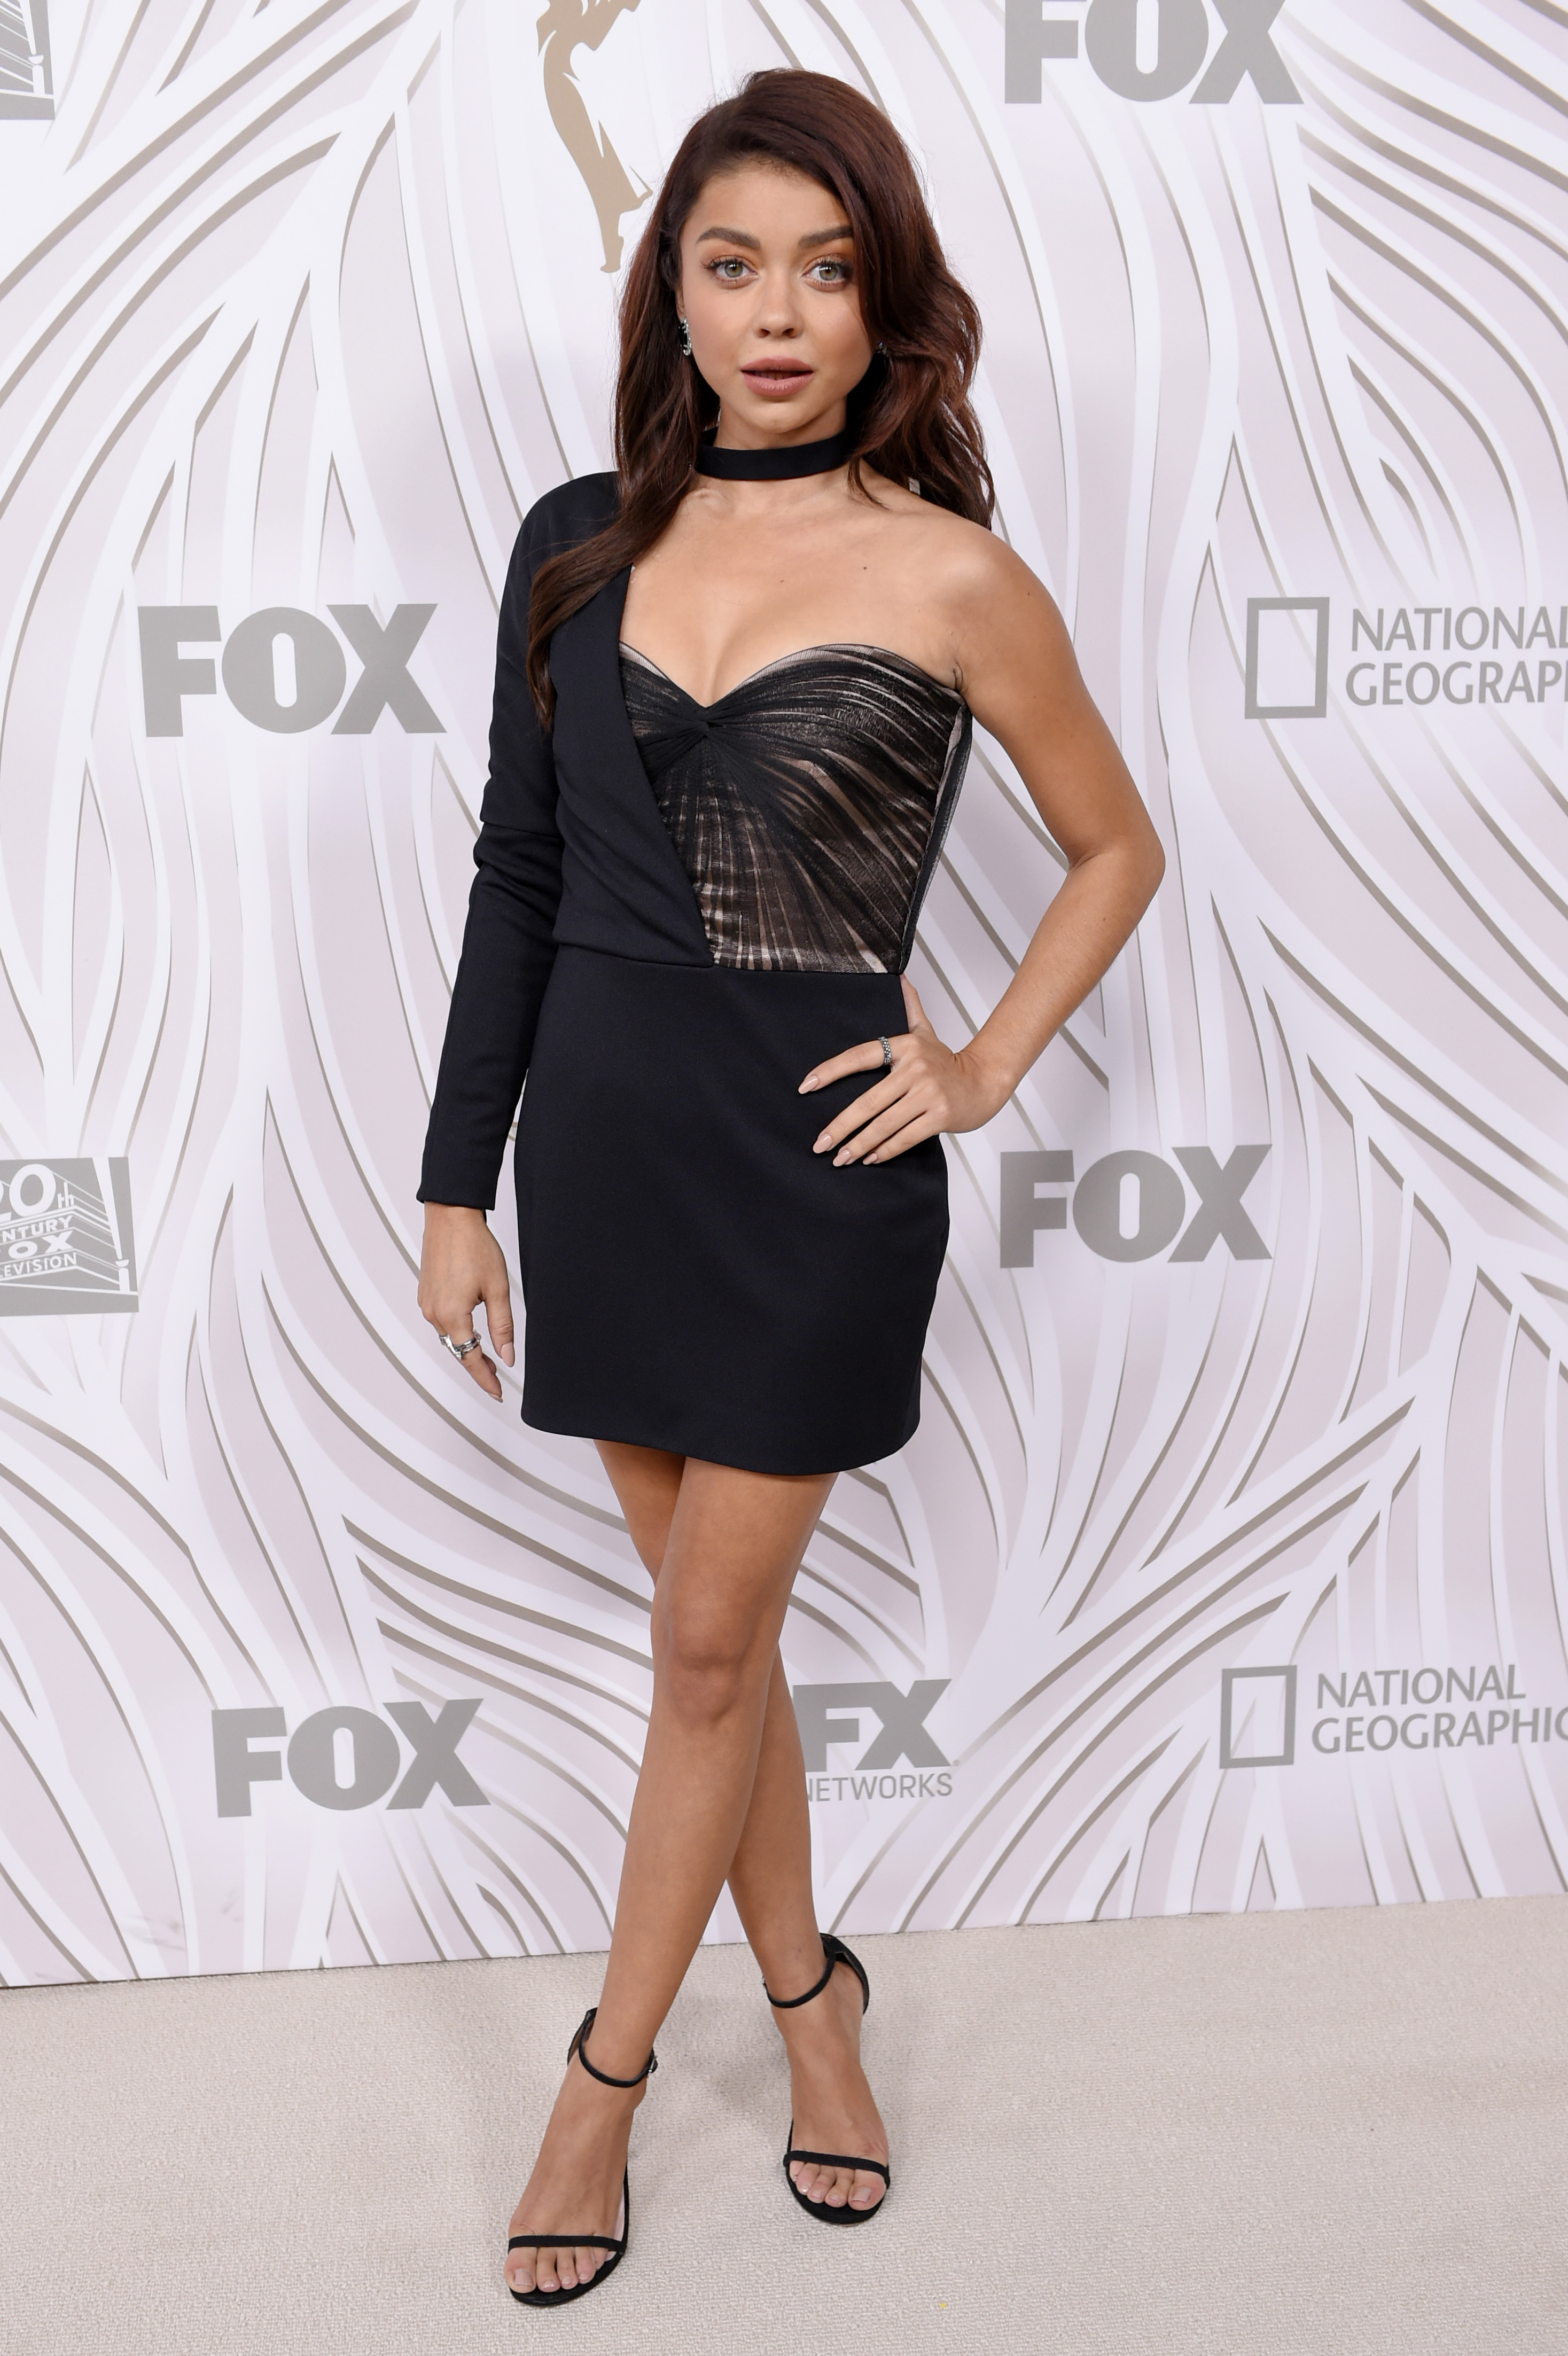 Sarah Hyland attends the FOX afterparty in Los Angeles on Sept. 17, 2017.